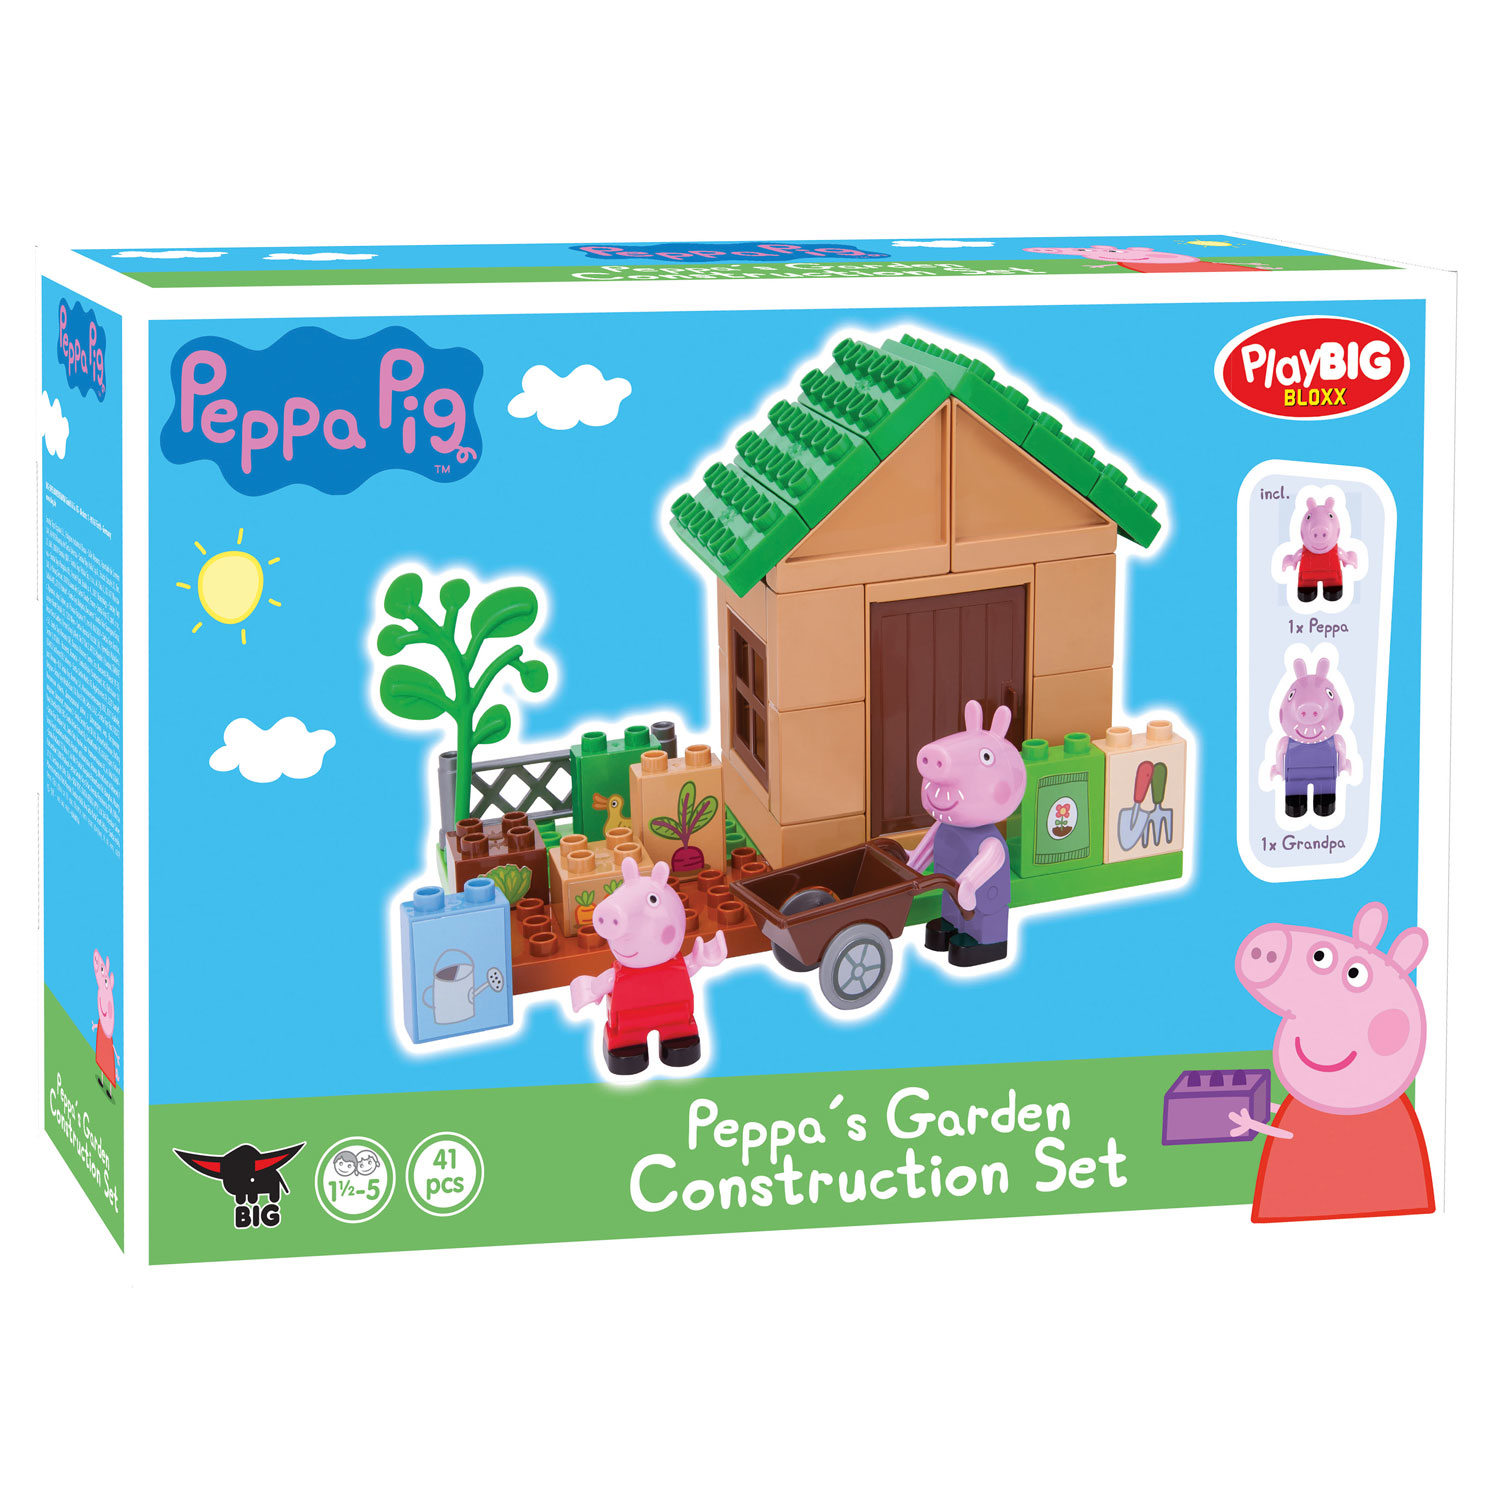 PlayBIG Bloxx Peppa Pig - Peppa's Tuin